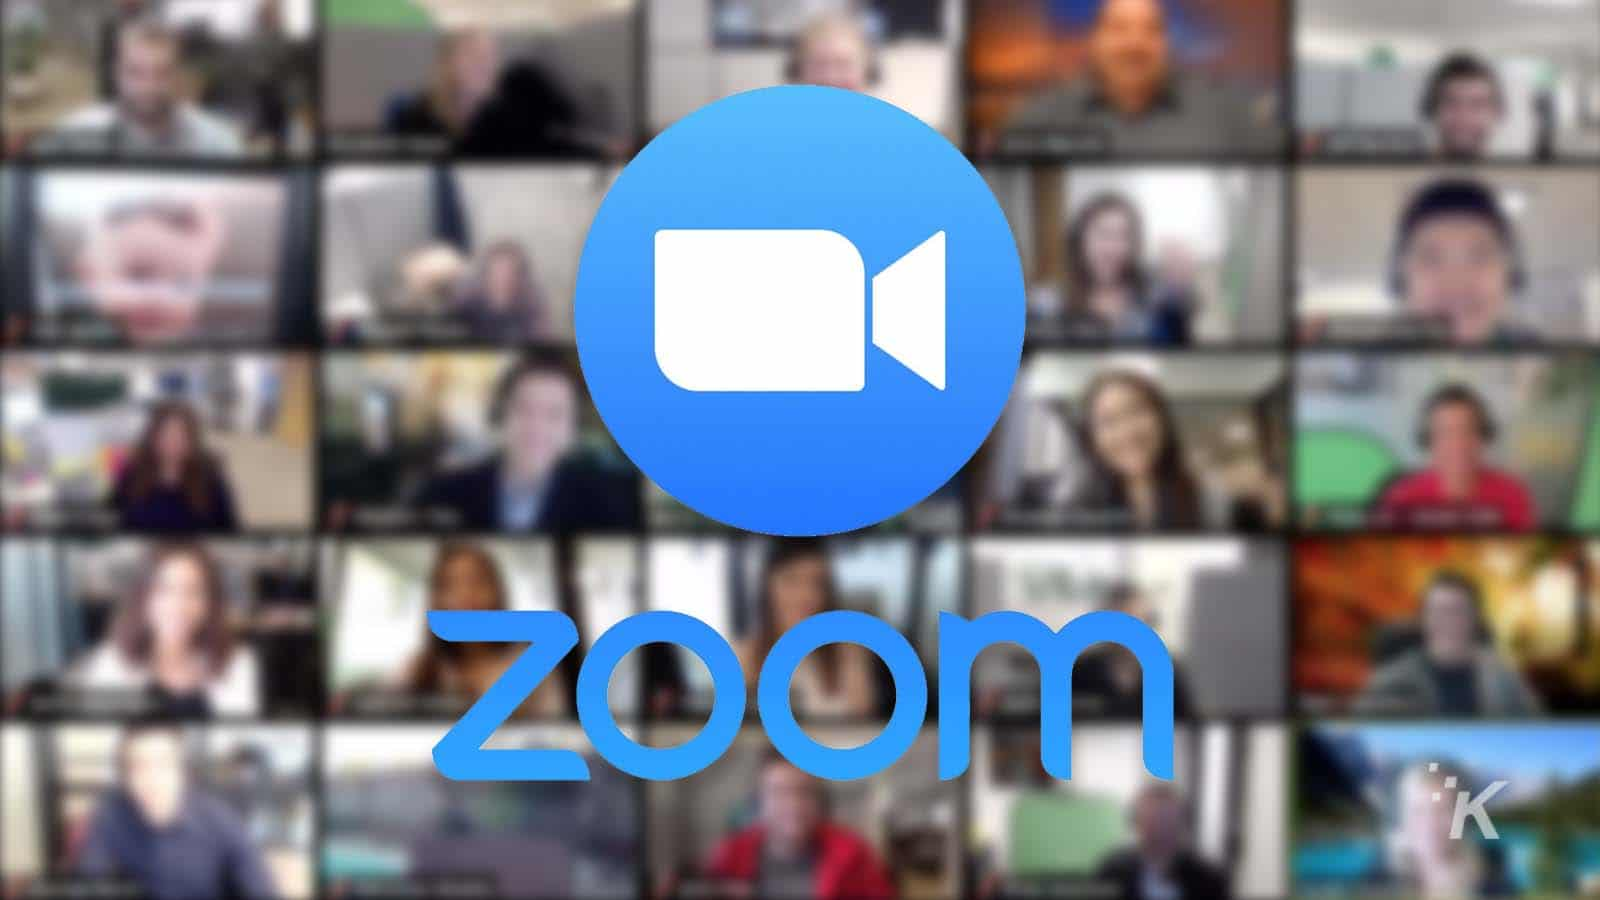 zoom app logo and background